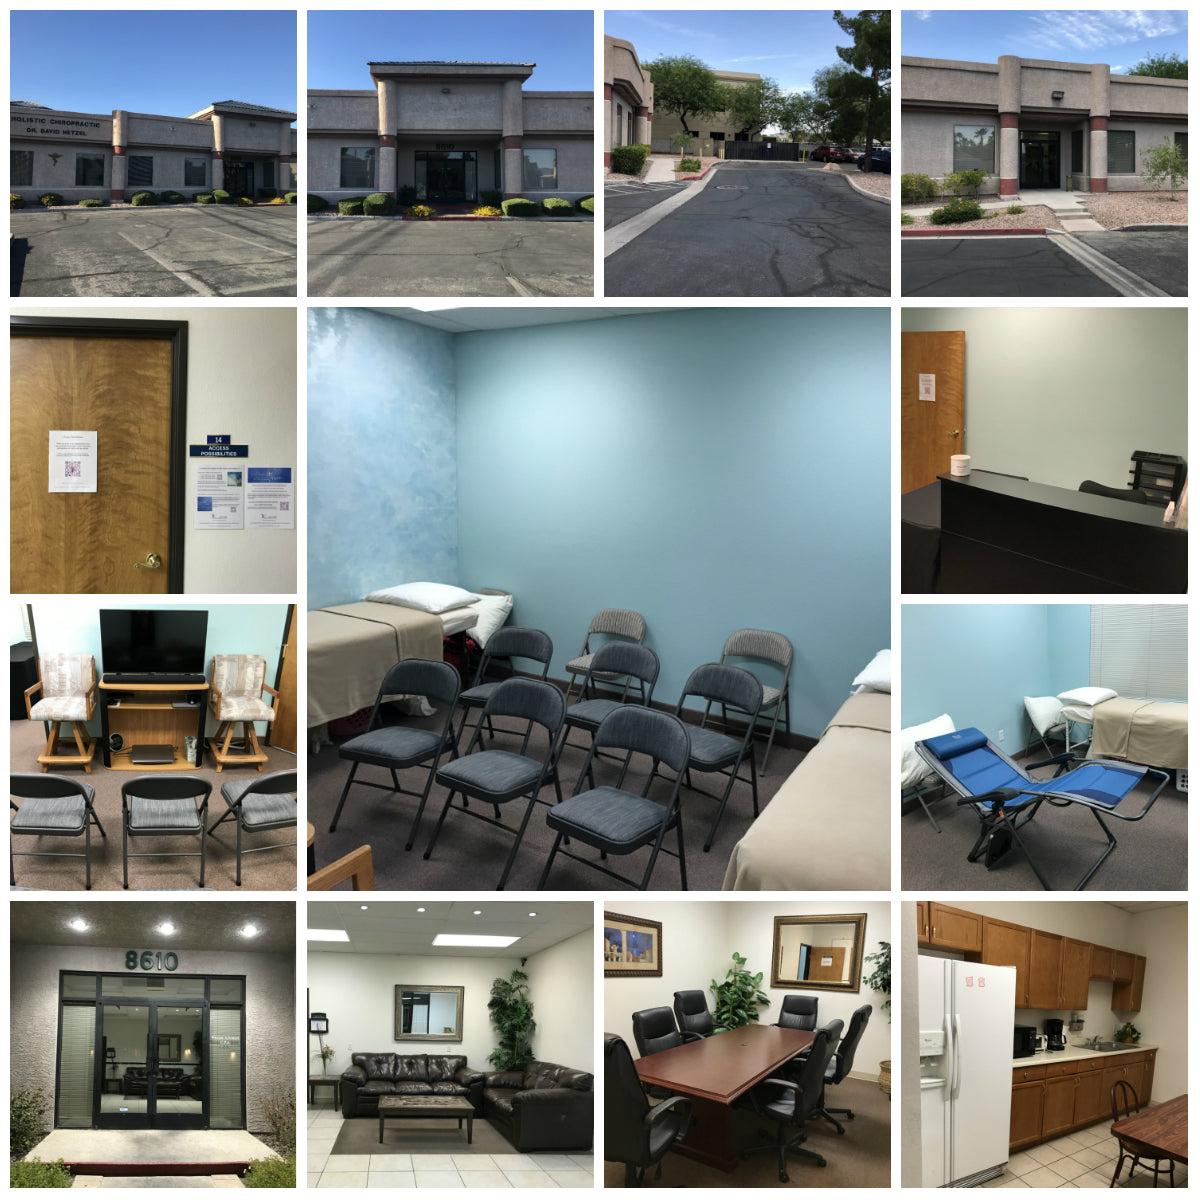 Access Possibilities | 8610 S Eastern Ave Suite 14 | Directions & Additional Information